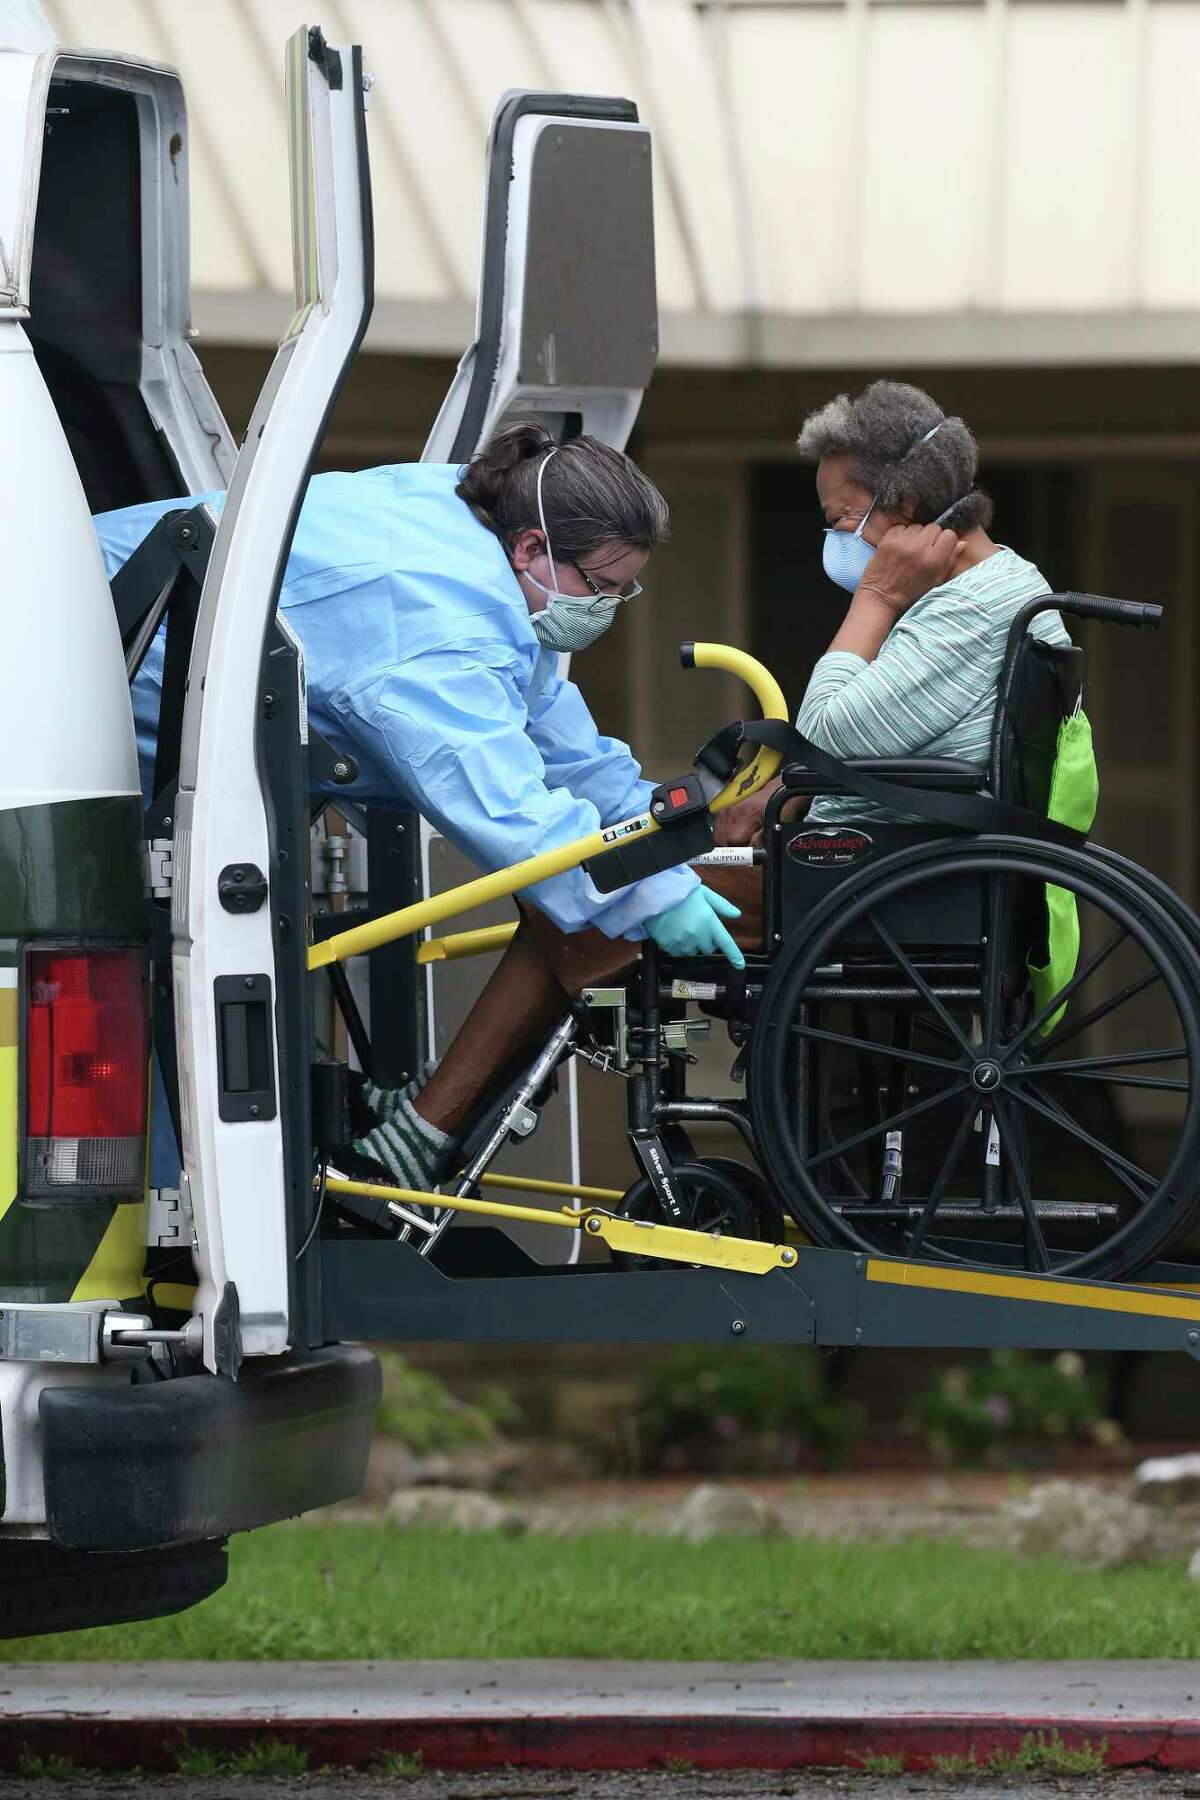 A resident is taken out of the Southeast Nursing and Rehabilitation Center by a private ambulance on April 3, 2020. Seventeen residents of the nursing home have died after contracting the coronavirus.